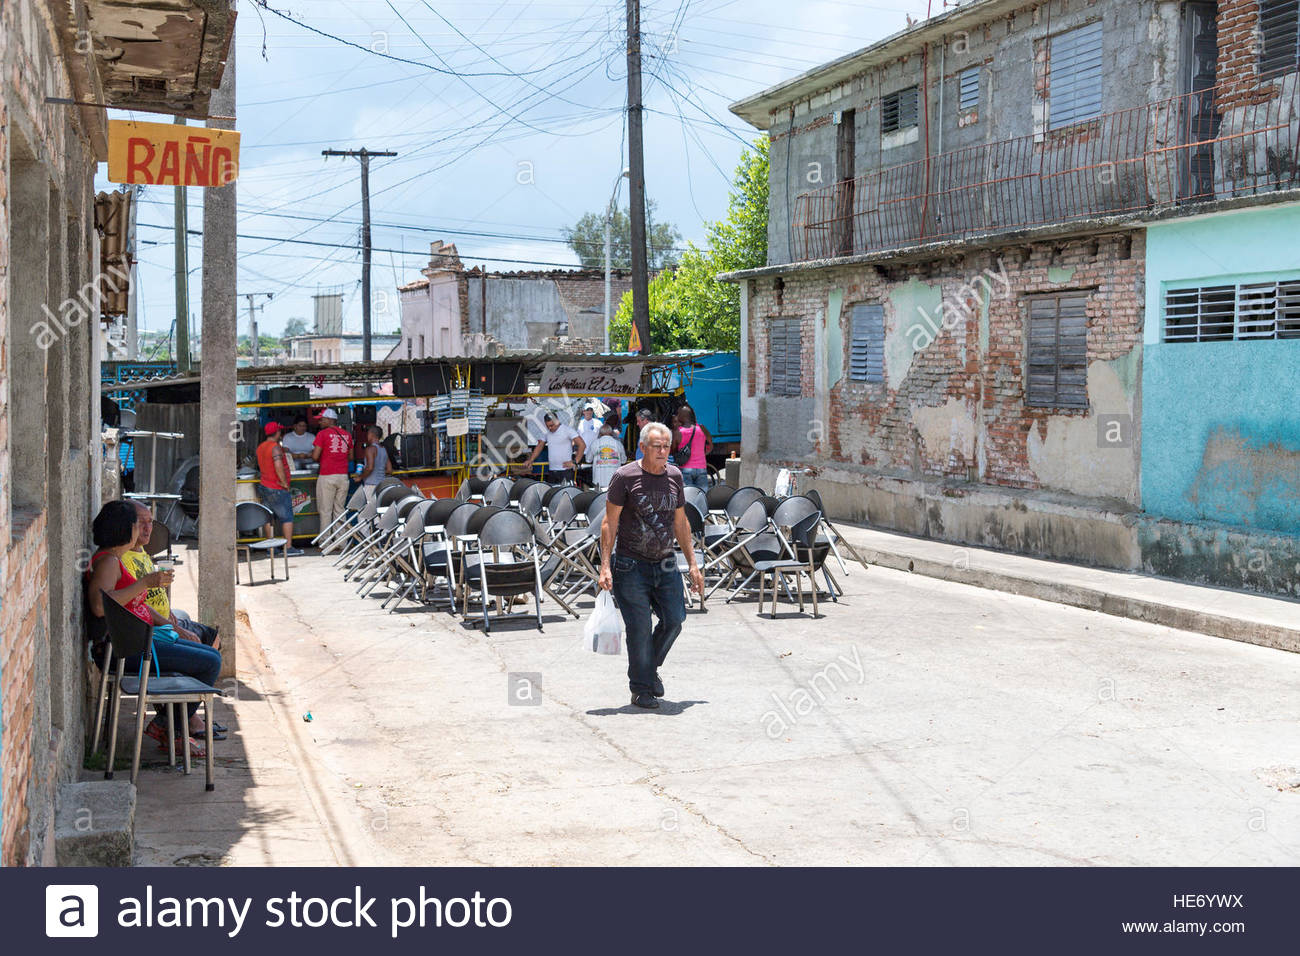 Carnivals: renting washroom in private house close to a beer selling stand. Street eating joint in the background. - Stock Image